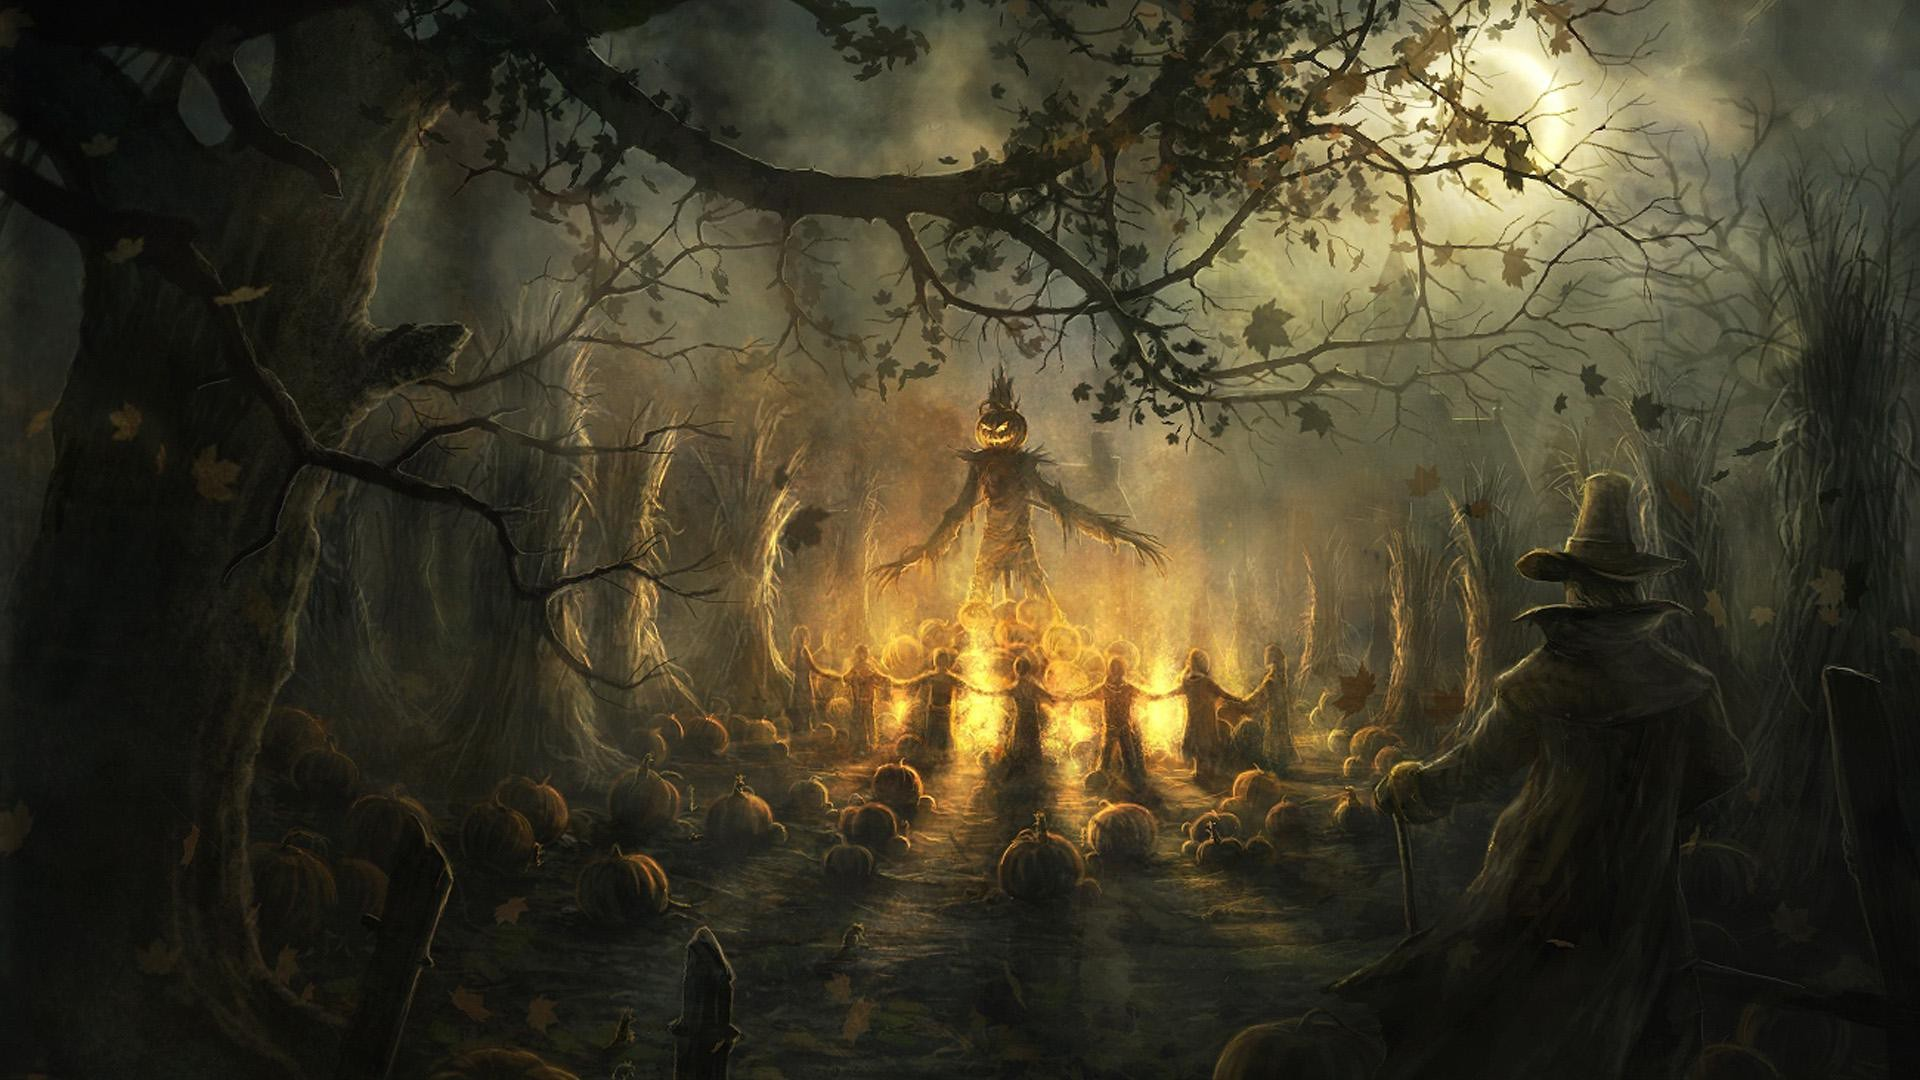 halloween screensavers and backgrounds | Scarecrow Halloween Android  Wallpapers 960×854 Mobile Hd Wallpaper | Tablet wallpapers | Pinterest |  Scarecrows